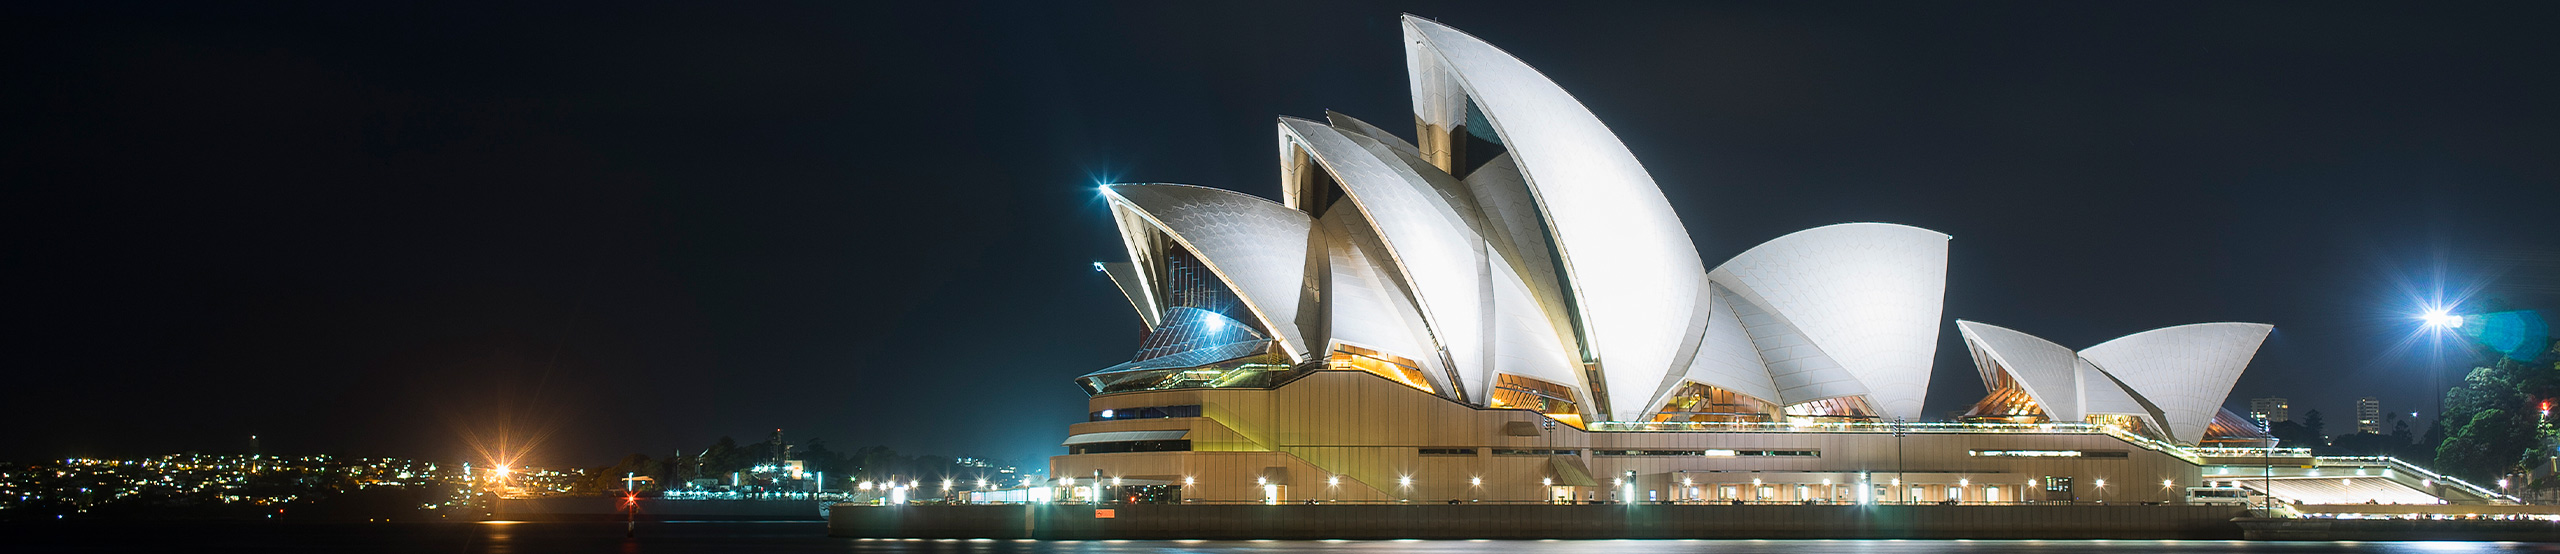 Sydney Opera House | Naples Global Advisors, SEC Registered Investment Advisor